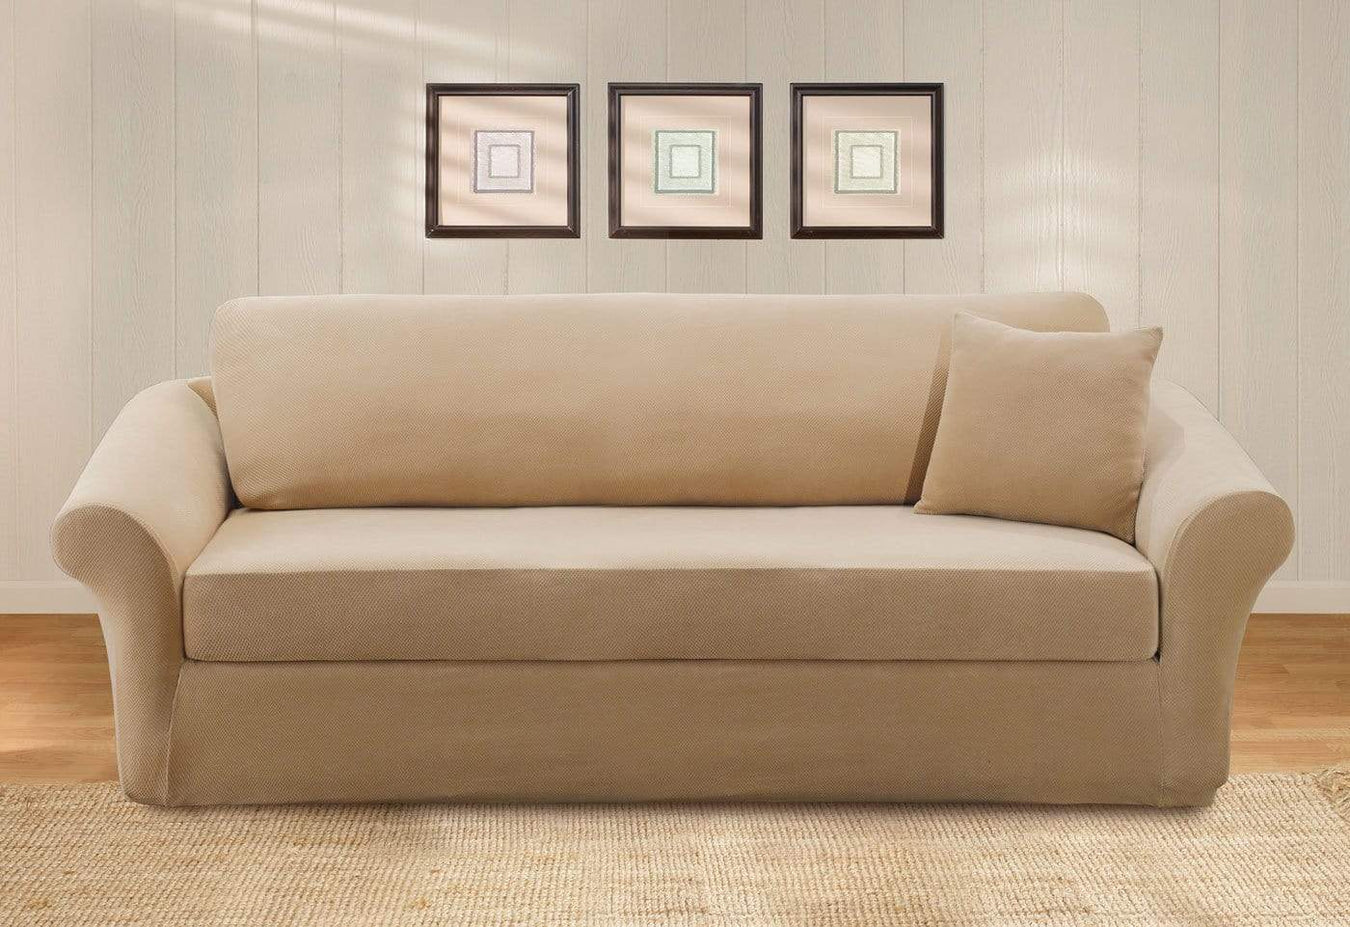 NEW Stretch Pique 3 piece scatterback Sofa Slipcover Cream t-cushion by sure fit